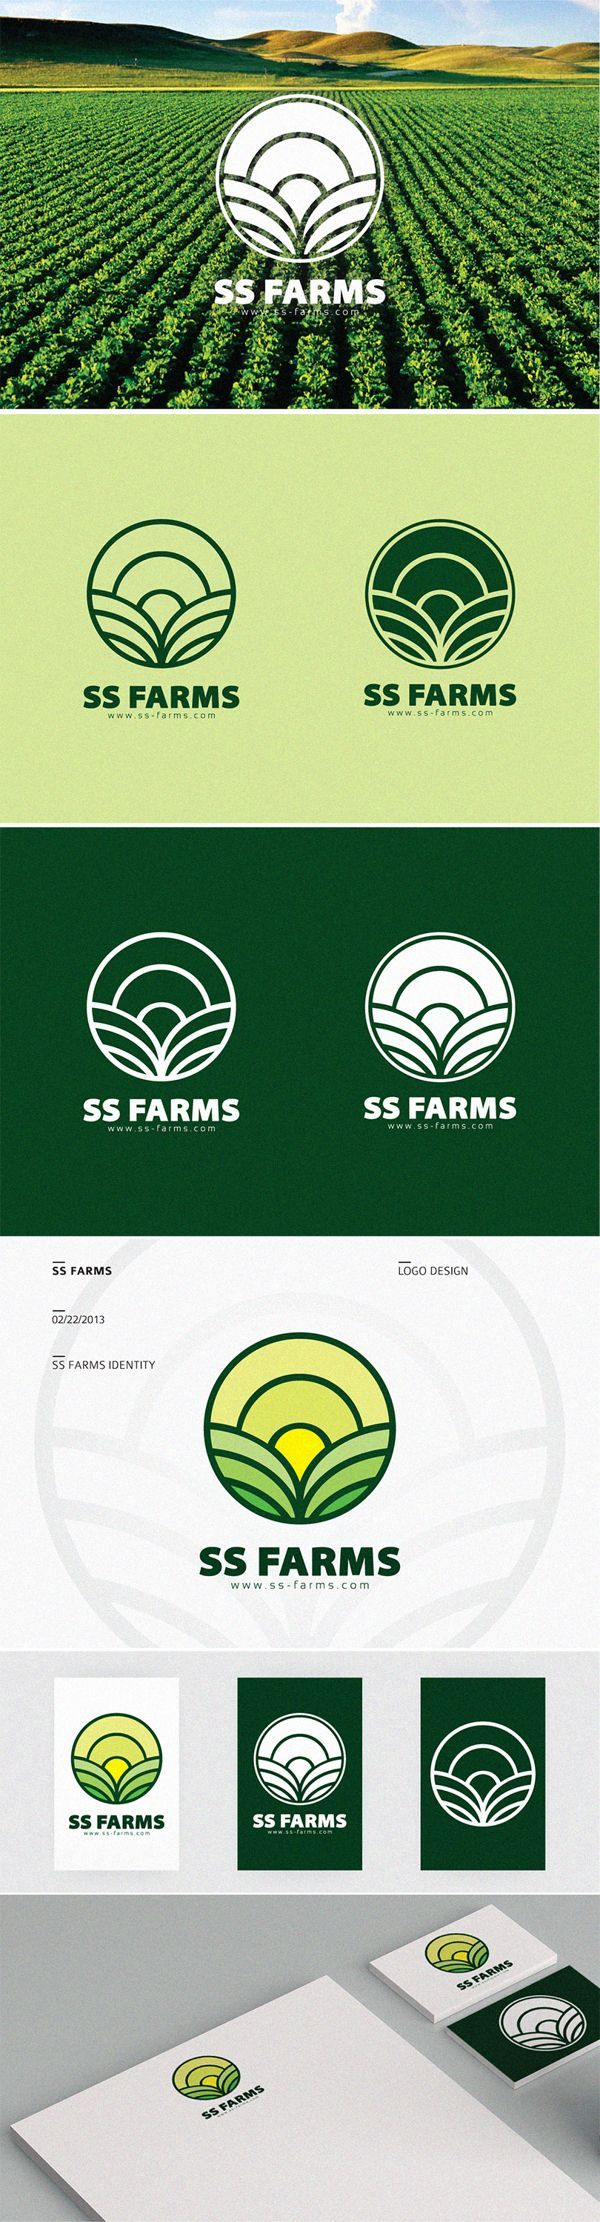 Agriculture Branding by Firman Suci Ananda , via Behance